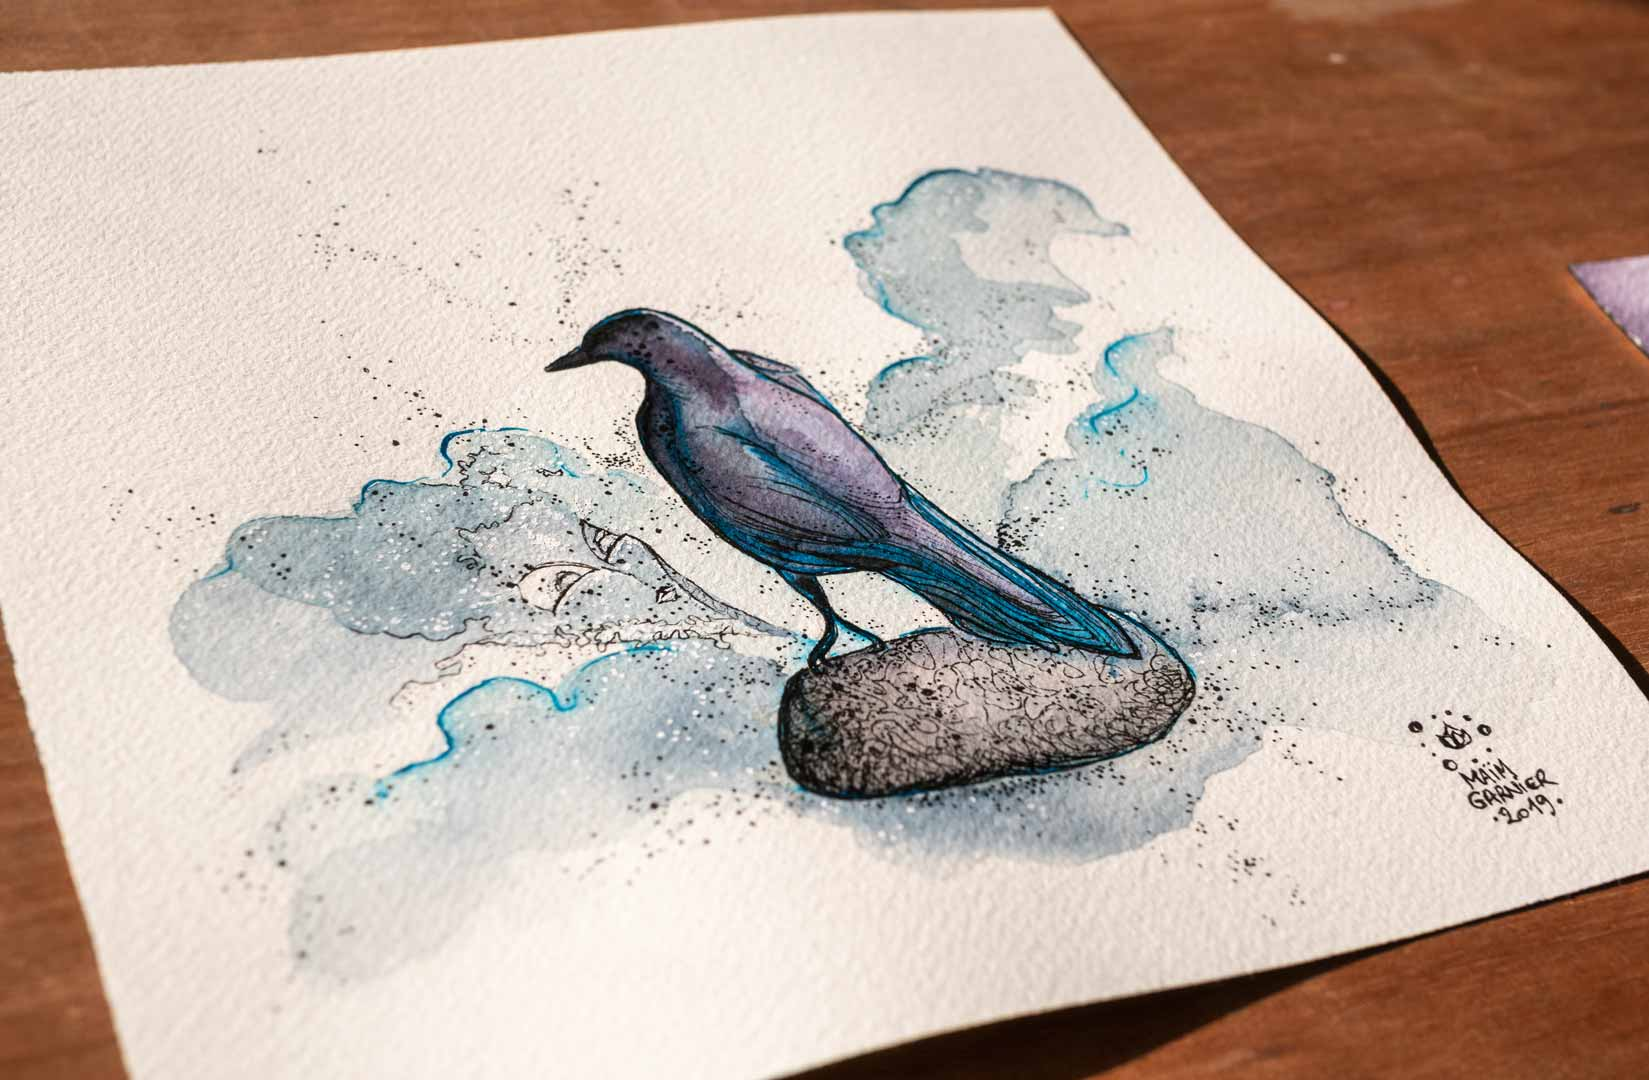 The Bird Statue. #Esperia serie, new art piece, ink and watercolor #illustration for a Dominique Poulain (Nimentrix) story. #aquarelle #watercolorartists #illust #fantasyartwork #MaimGarnier #inktober2019 #inktober #bird #magic